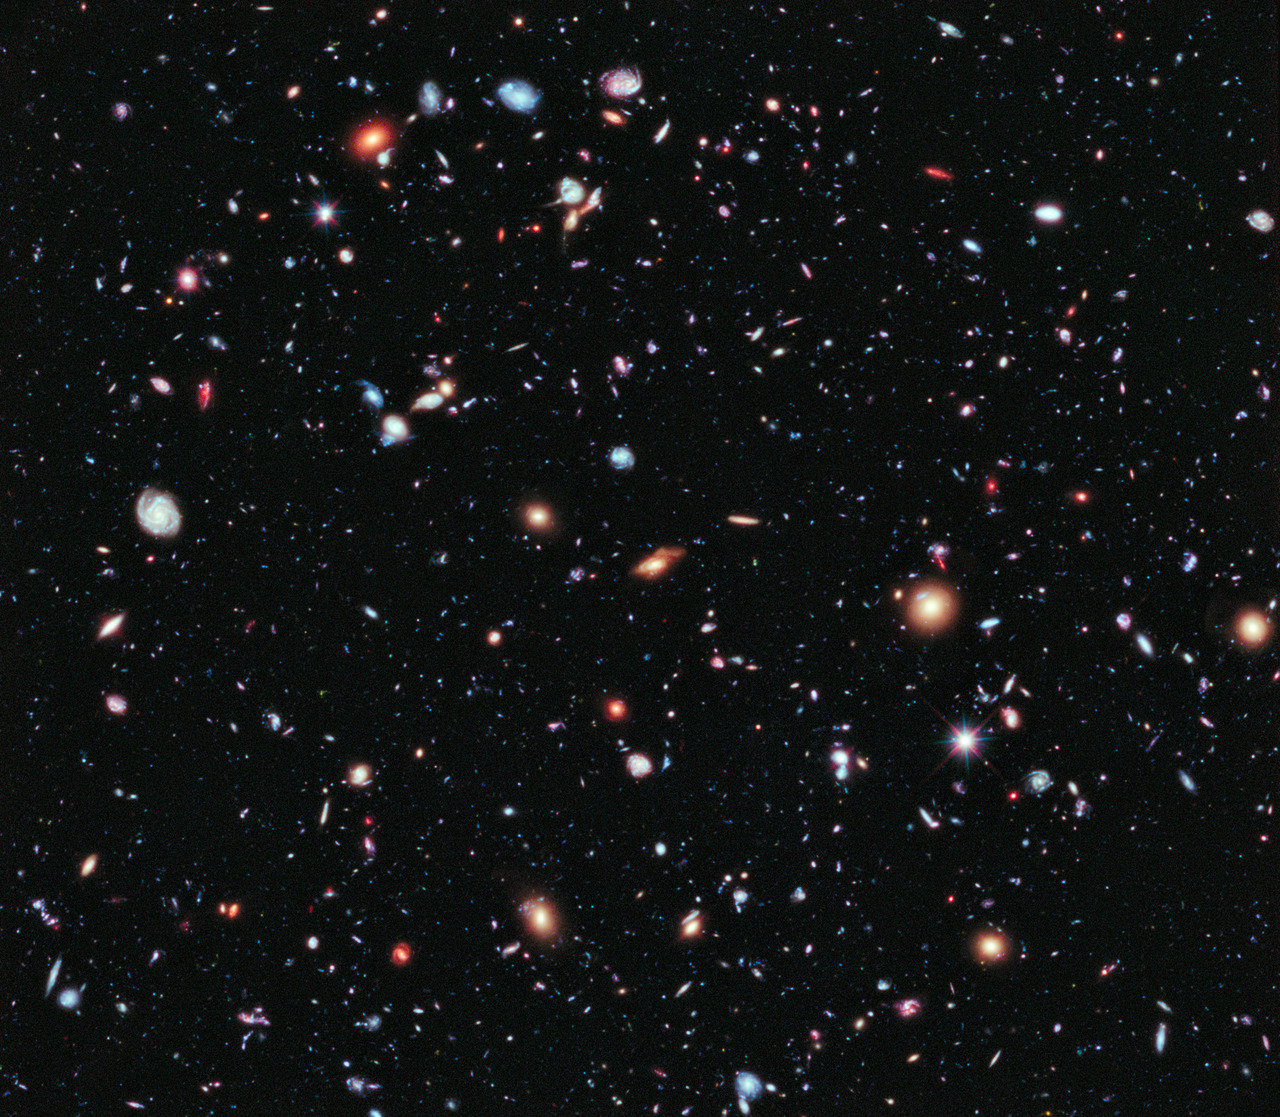 jtotheizzoe: Hubble Goes Back In Tiiiiiime If I may: Some recommended listening to accompany this post. Over the course of 50 days, and a total exposure time of 2 million seconds, the Hubble Space Telescope captured the above image. This eXtreme Deep Field (XDF) view is like visual time travel, revealing galaxies so distant that the light that made the image was released 13.2 BILLION years ago. That was only about 500 million years after the Big Bang! This image only contains about 5,500 galaxies because its field of view was so much smaller, and many of them are very young in this image. This means that we can use it to gain clues to how things were churning and forming in the Olde Days of the Universe. I stared at this for several minutes, and was awed by two thoughts: How many of these don't even exist anymore? How many stars just like ours are inside of each one? Tour a hi-res image here, and share in the wow. (via HubbleSite) This is phenomenal.